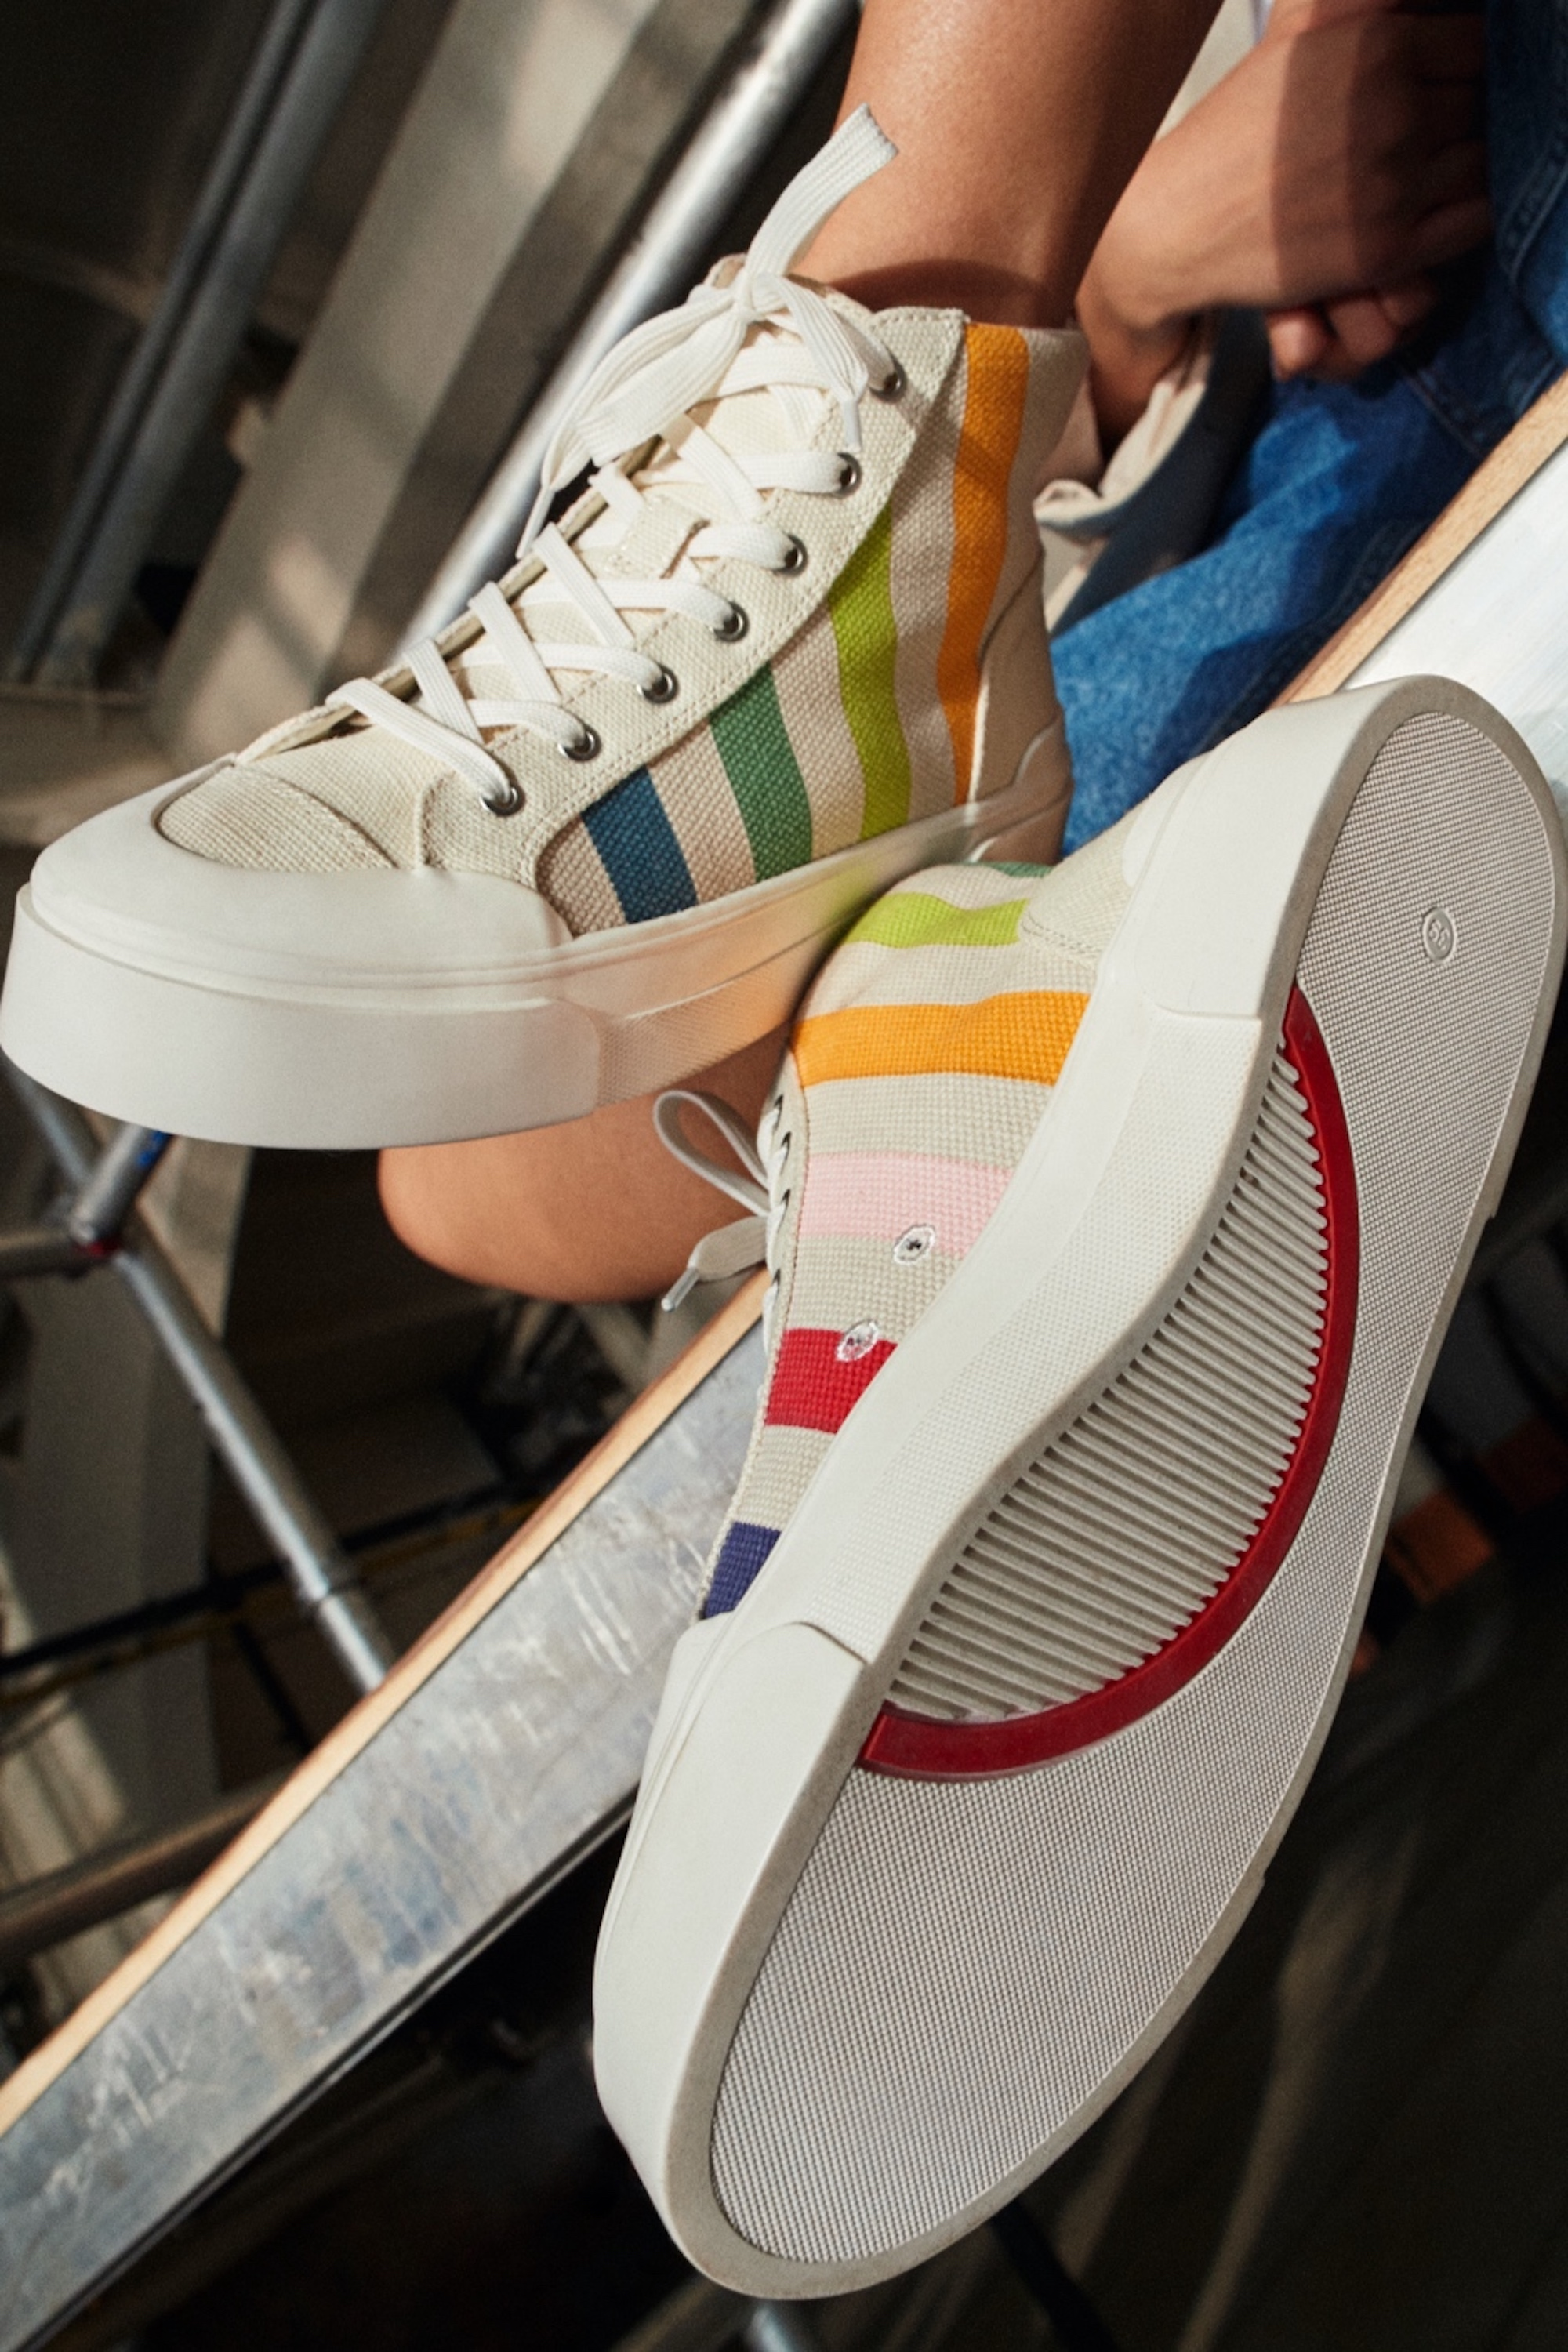 Good News x H&M collaboration striped sneakers